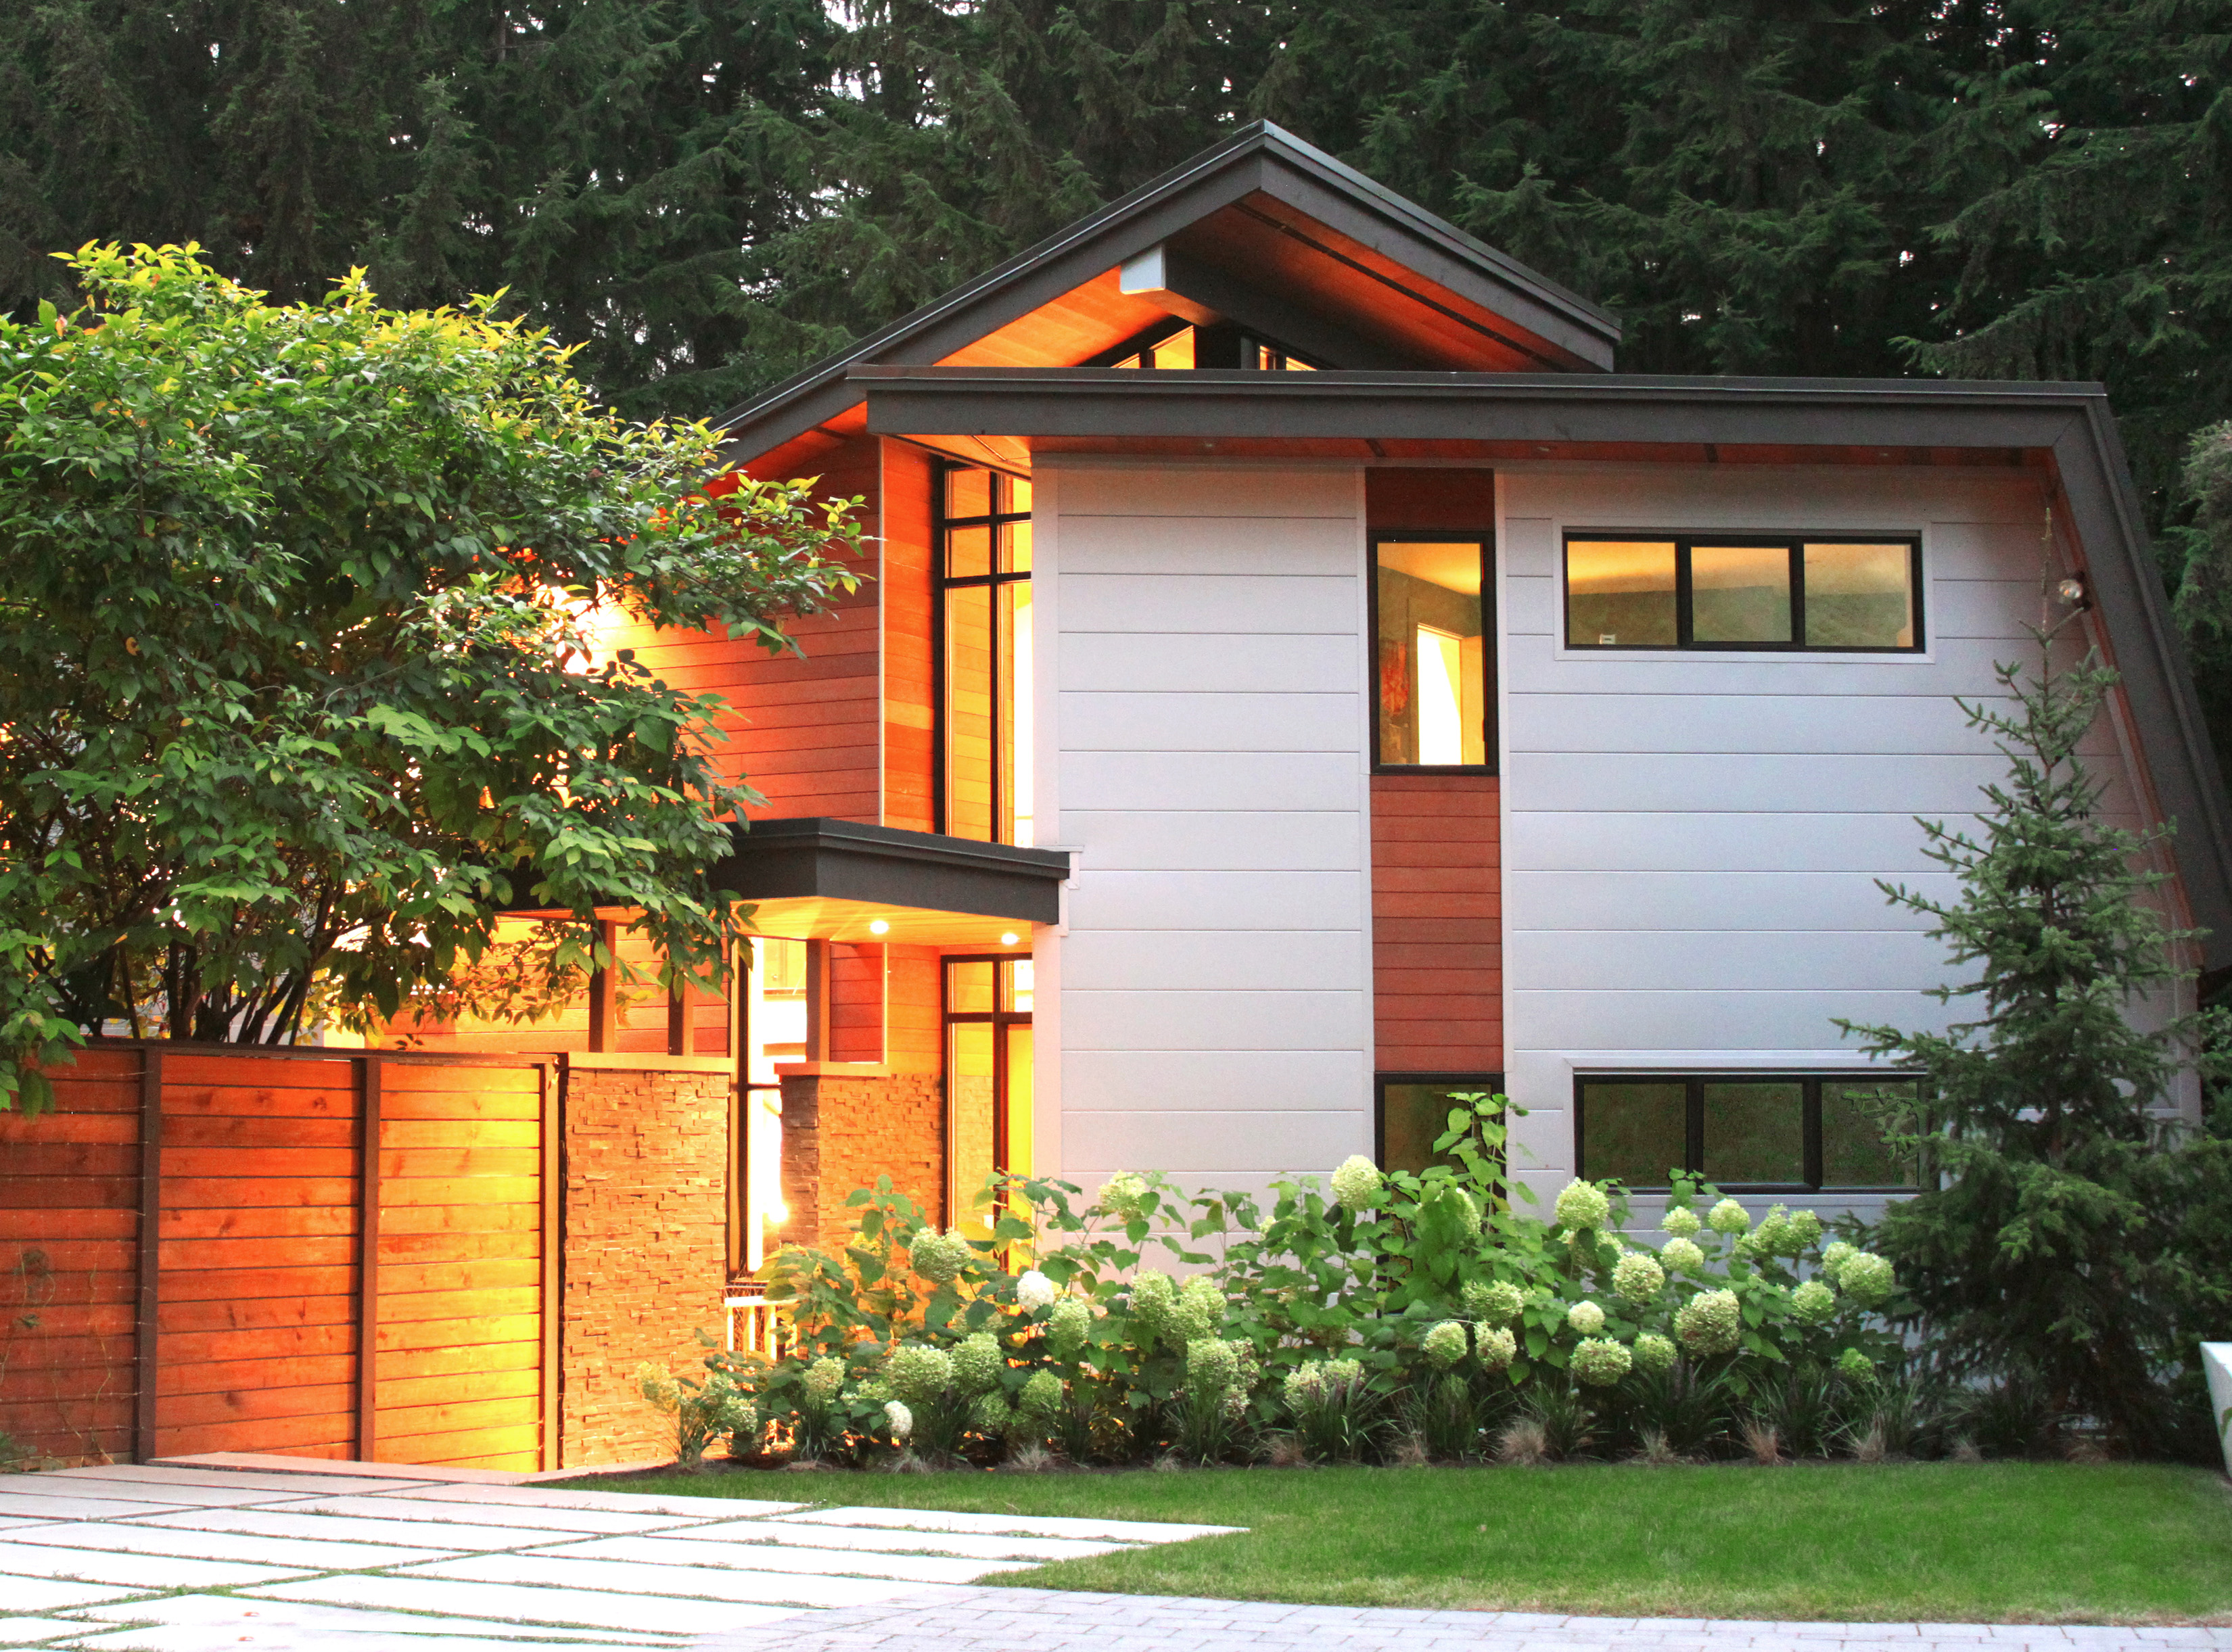 Explore modern homes in the pacific northwest in september for Northwest contemporary homes